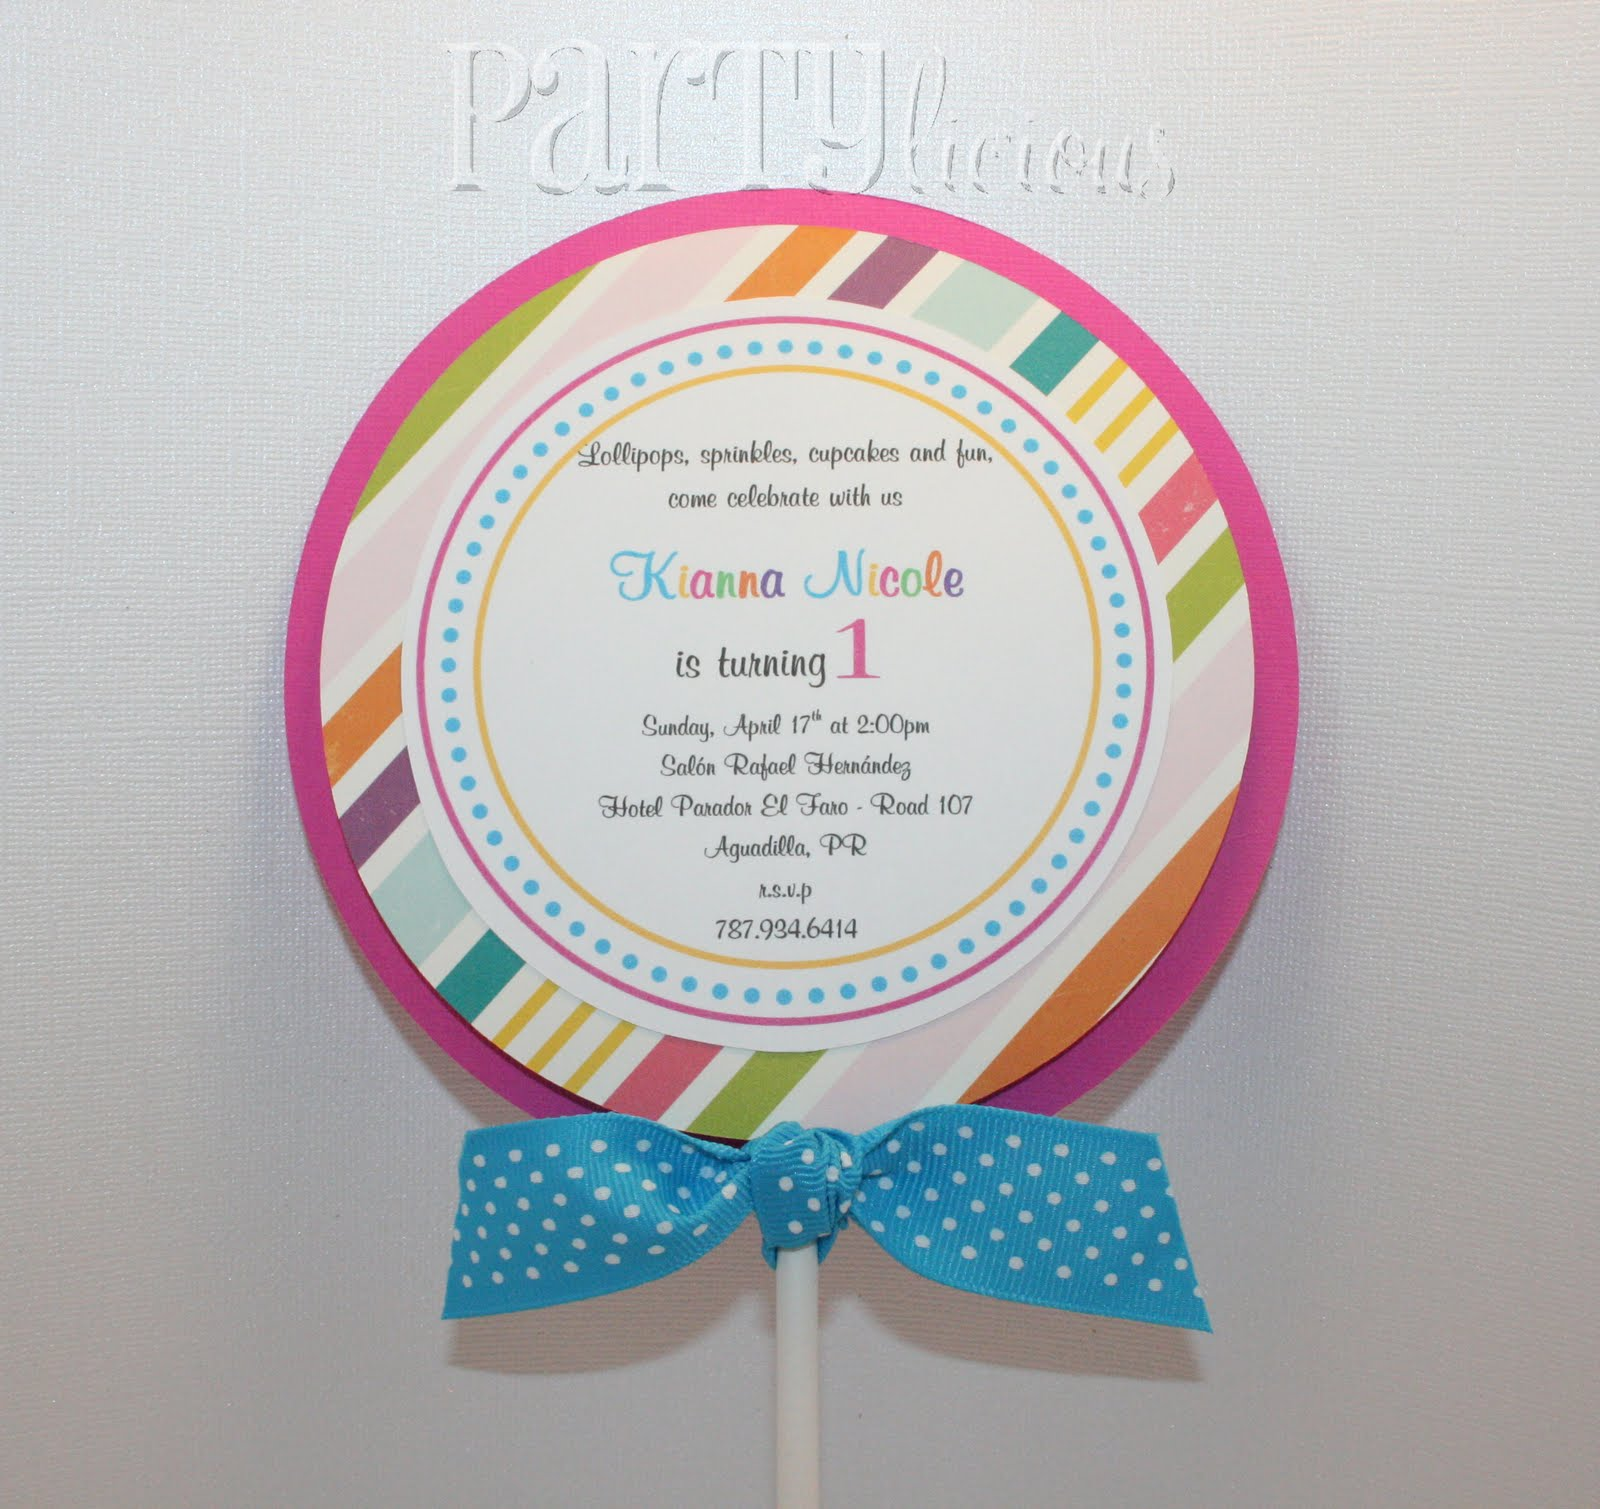 Partylicious Events PR: {Sweet 1st Birthday: Candy & Cupcakes}